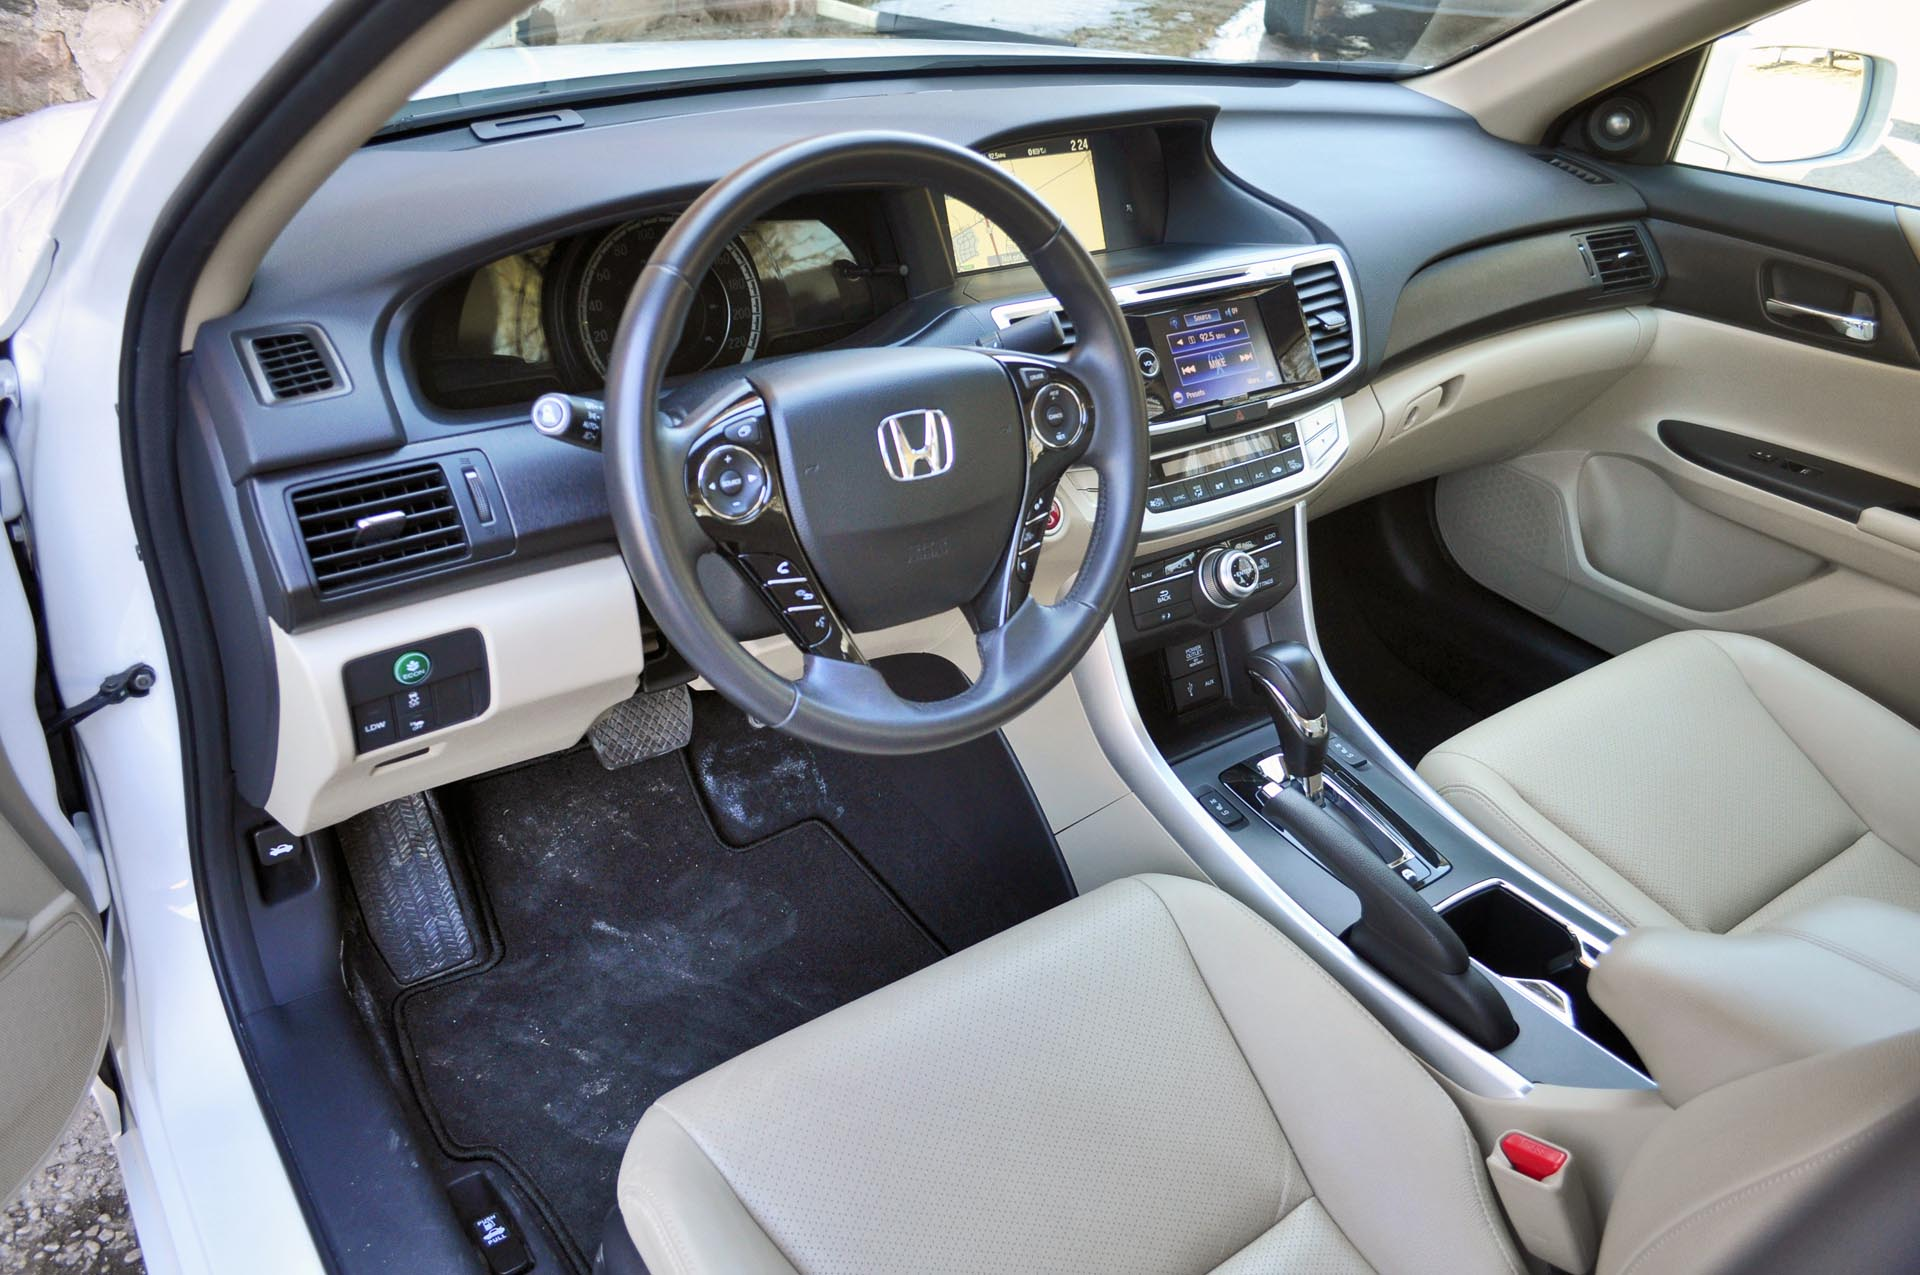 touring news adds hybrid equipment increase front quarter prices three accord turn honda